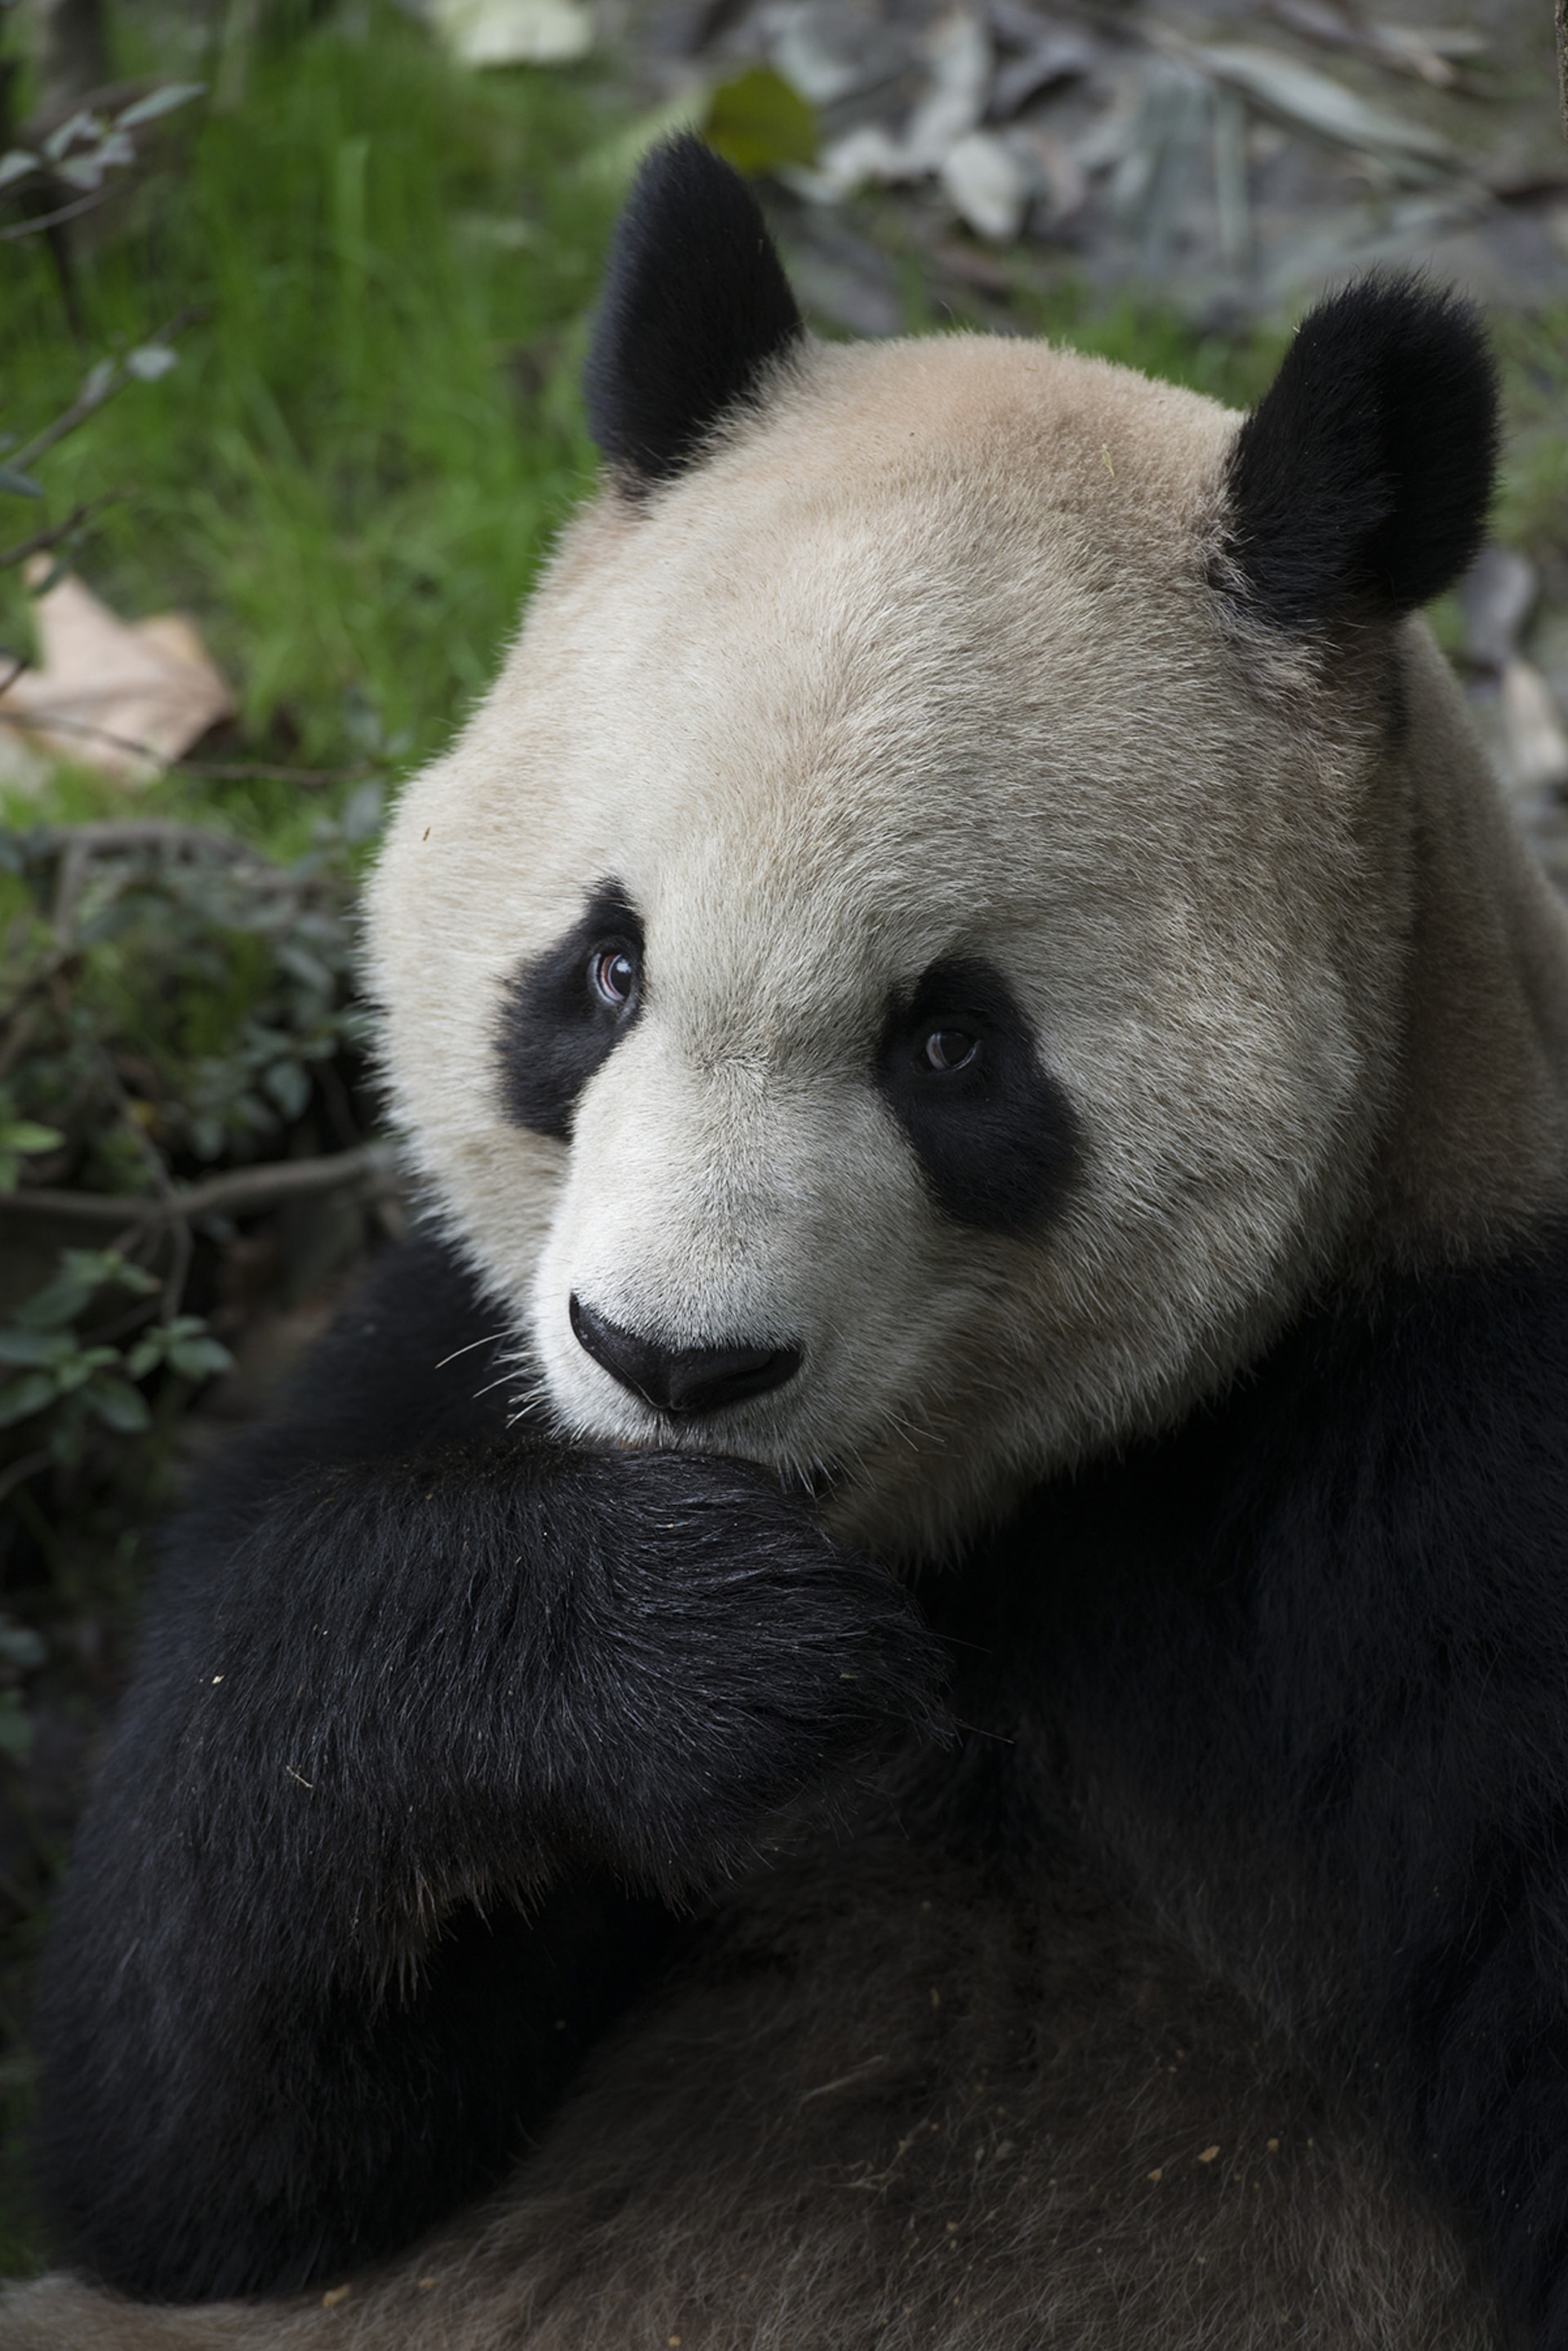 A Giant Panda at China's Chengdu Panda Base as seen in the new IMAX® film, PANDAS